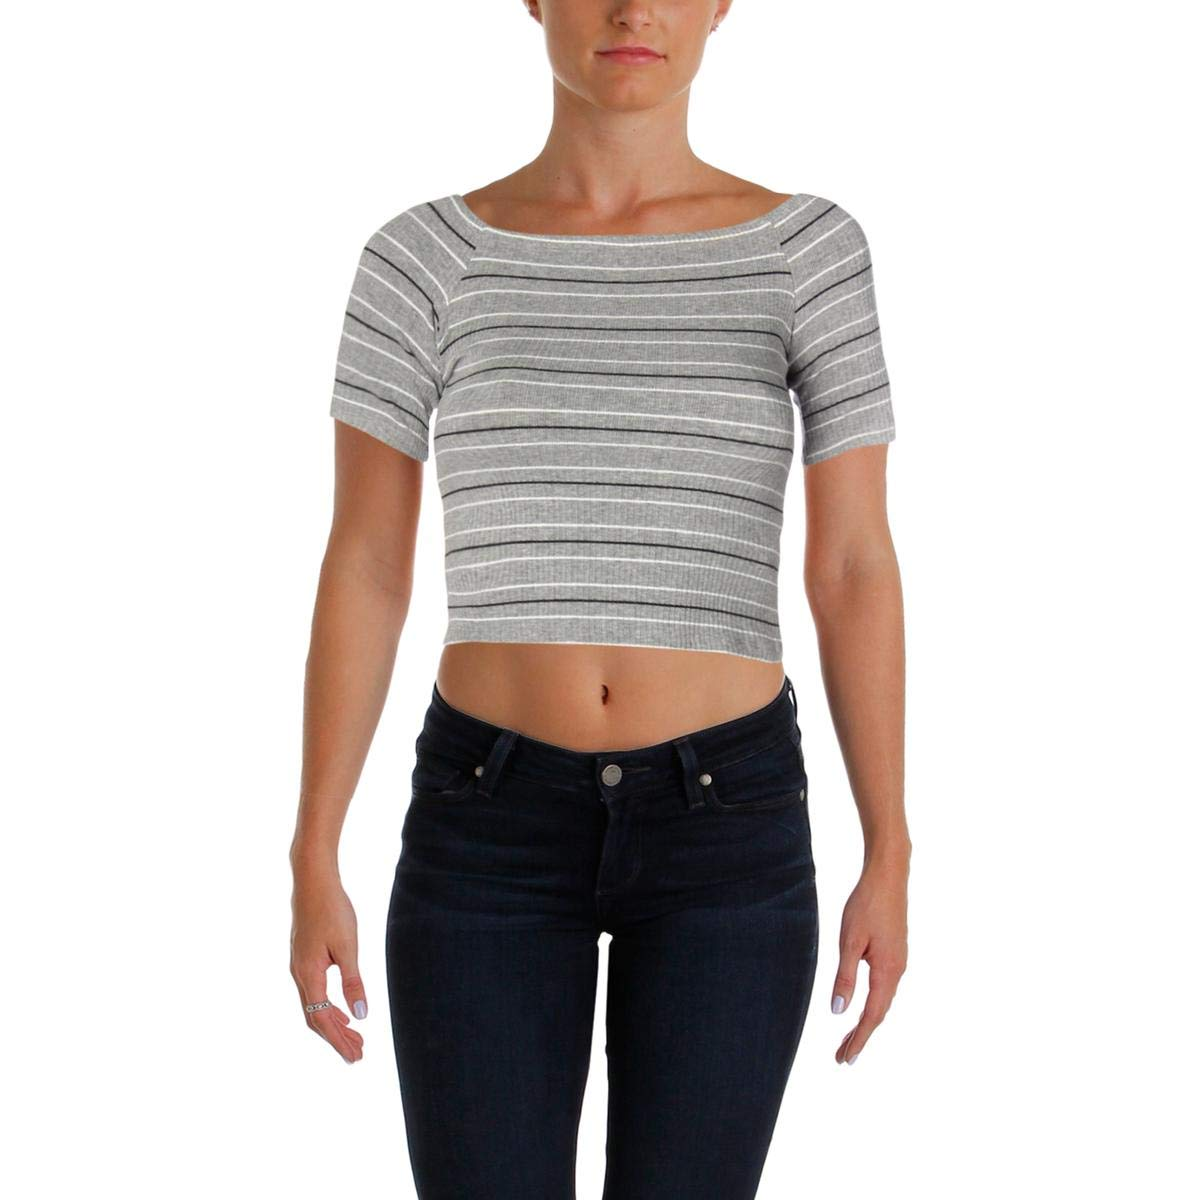 Michelle By Comune Women's Beason Off The Shoulder Rib Top, Heather Grey/Black/White, M